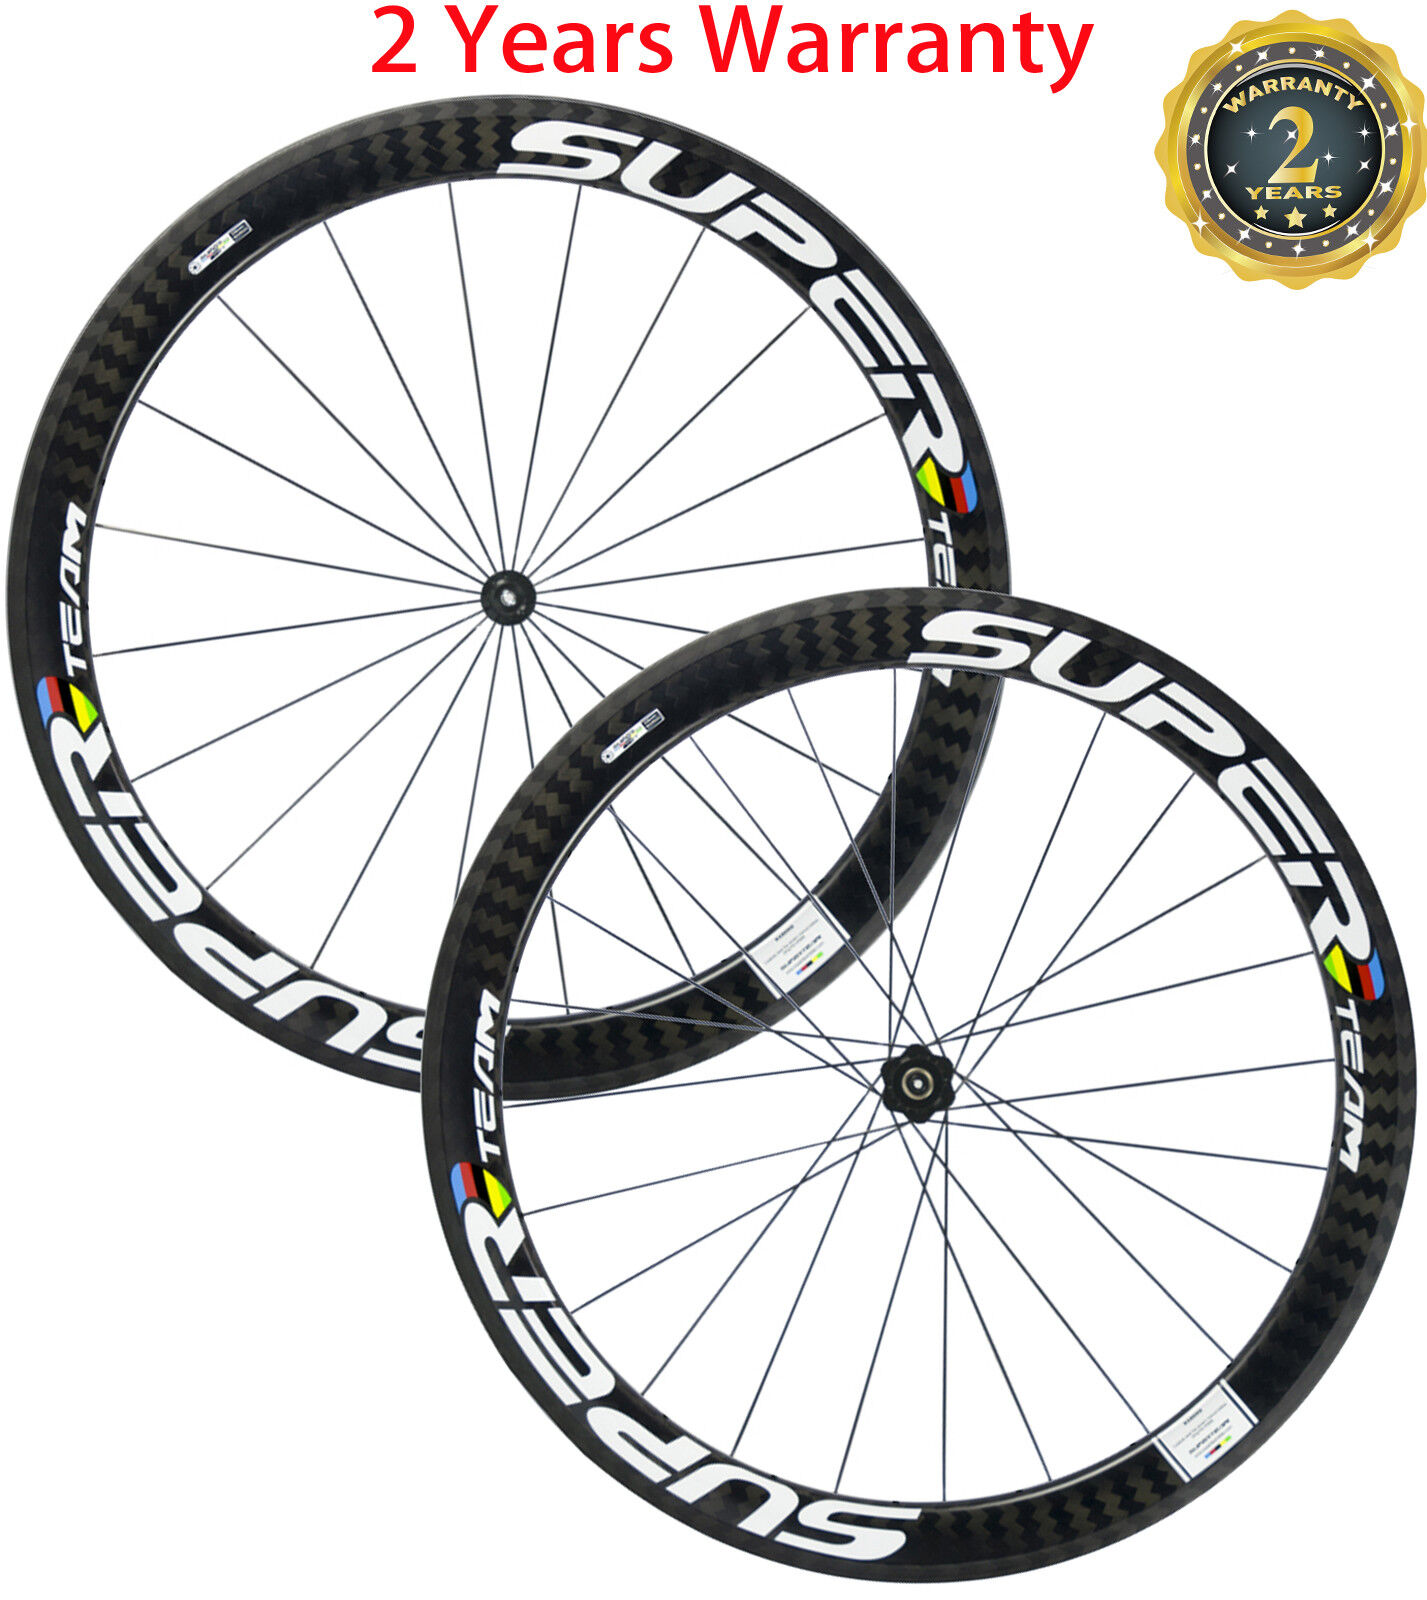 Superteam Carbon Wheels 50mm Clincher  Road Bike Wheelset DT350s Bicycle Wheelset  sale with high discount